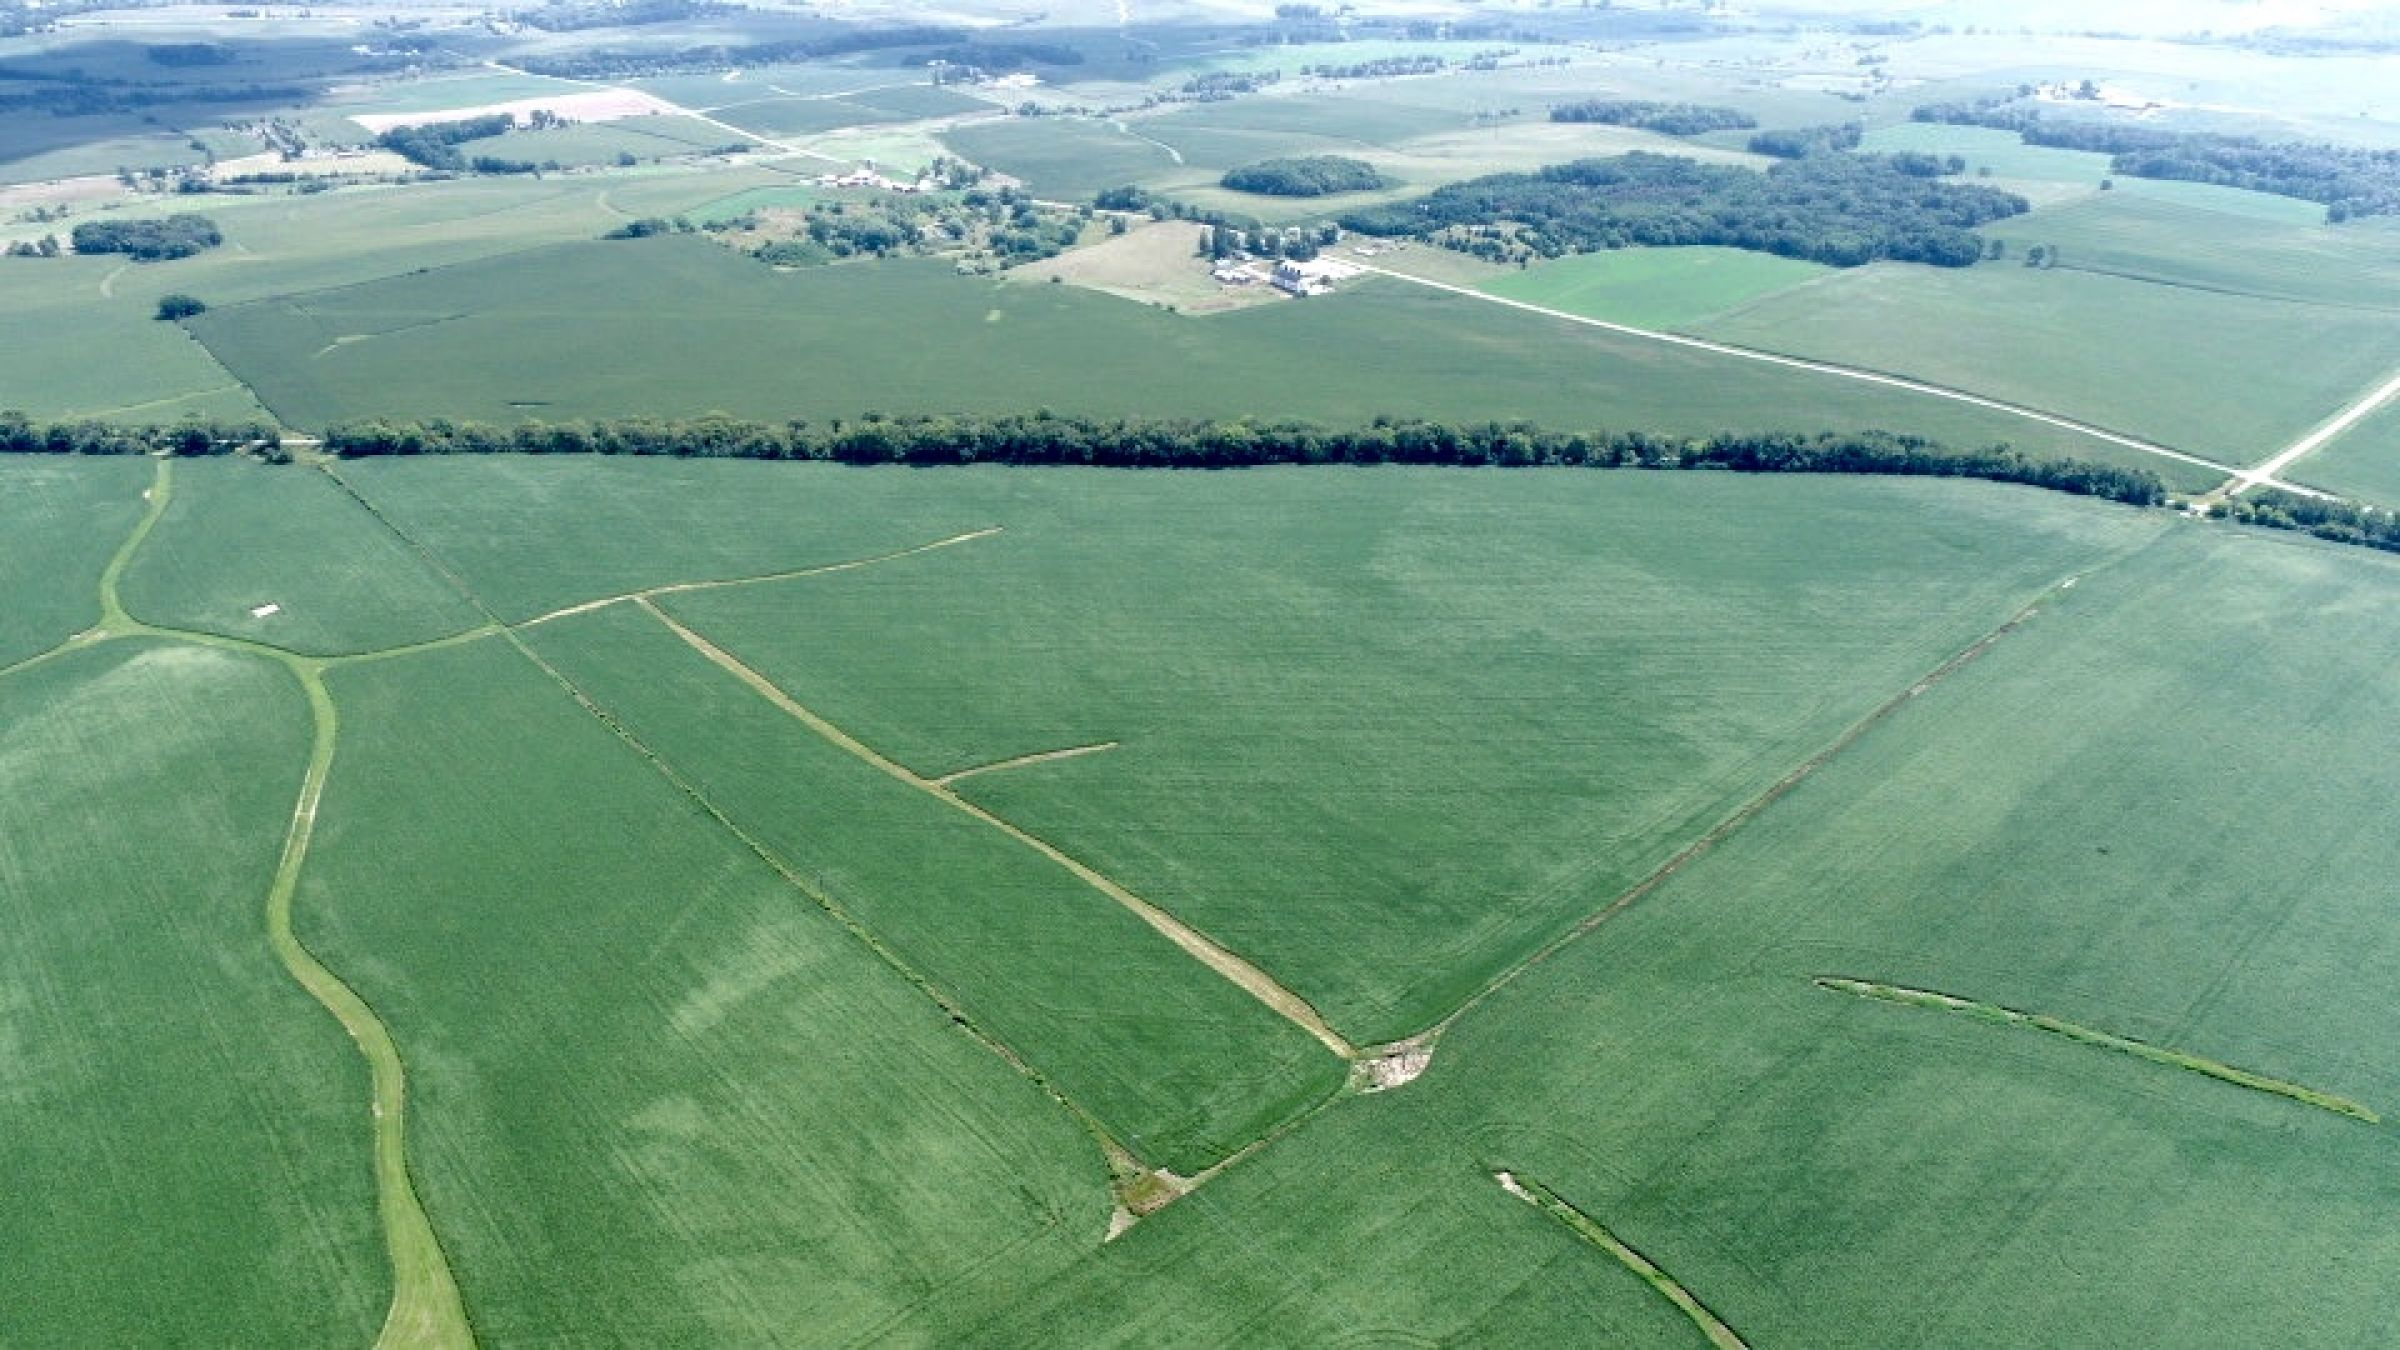 land-green-county-wisconsin-80-acres-listing-number-15692-8-2021-08-19-205614.jpg